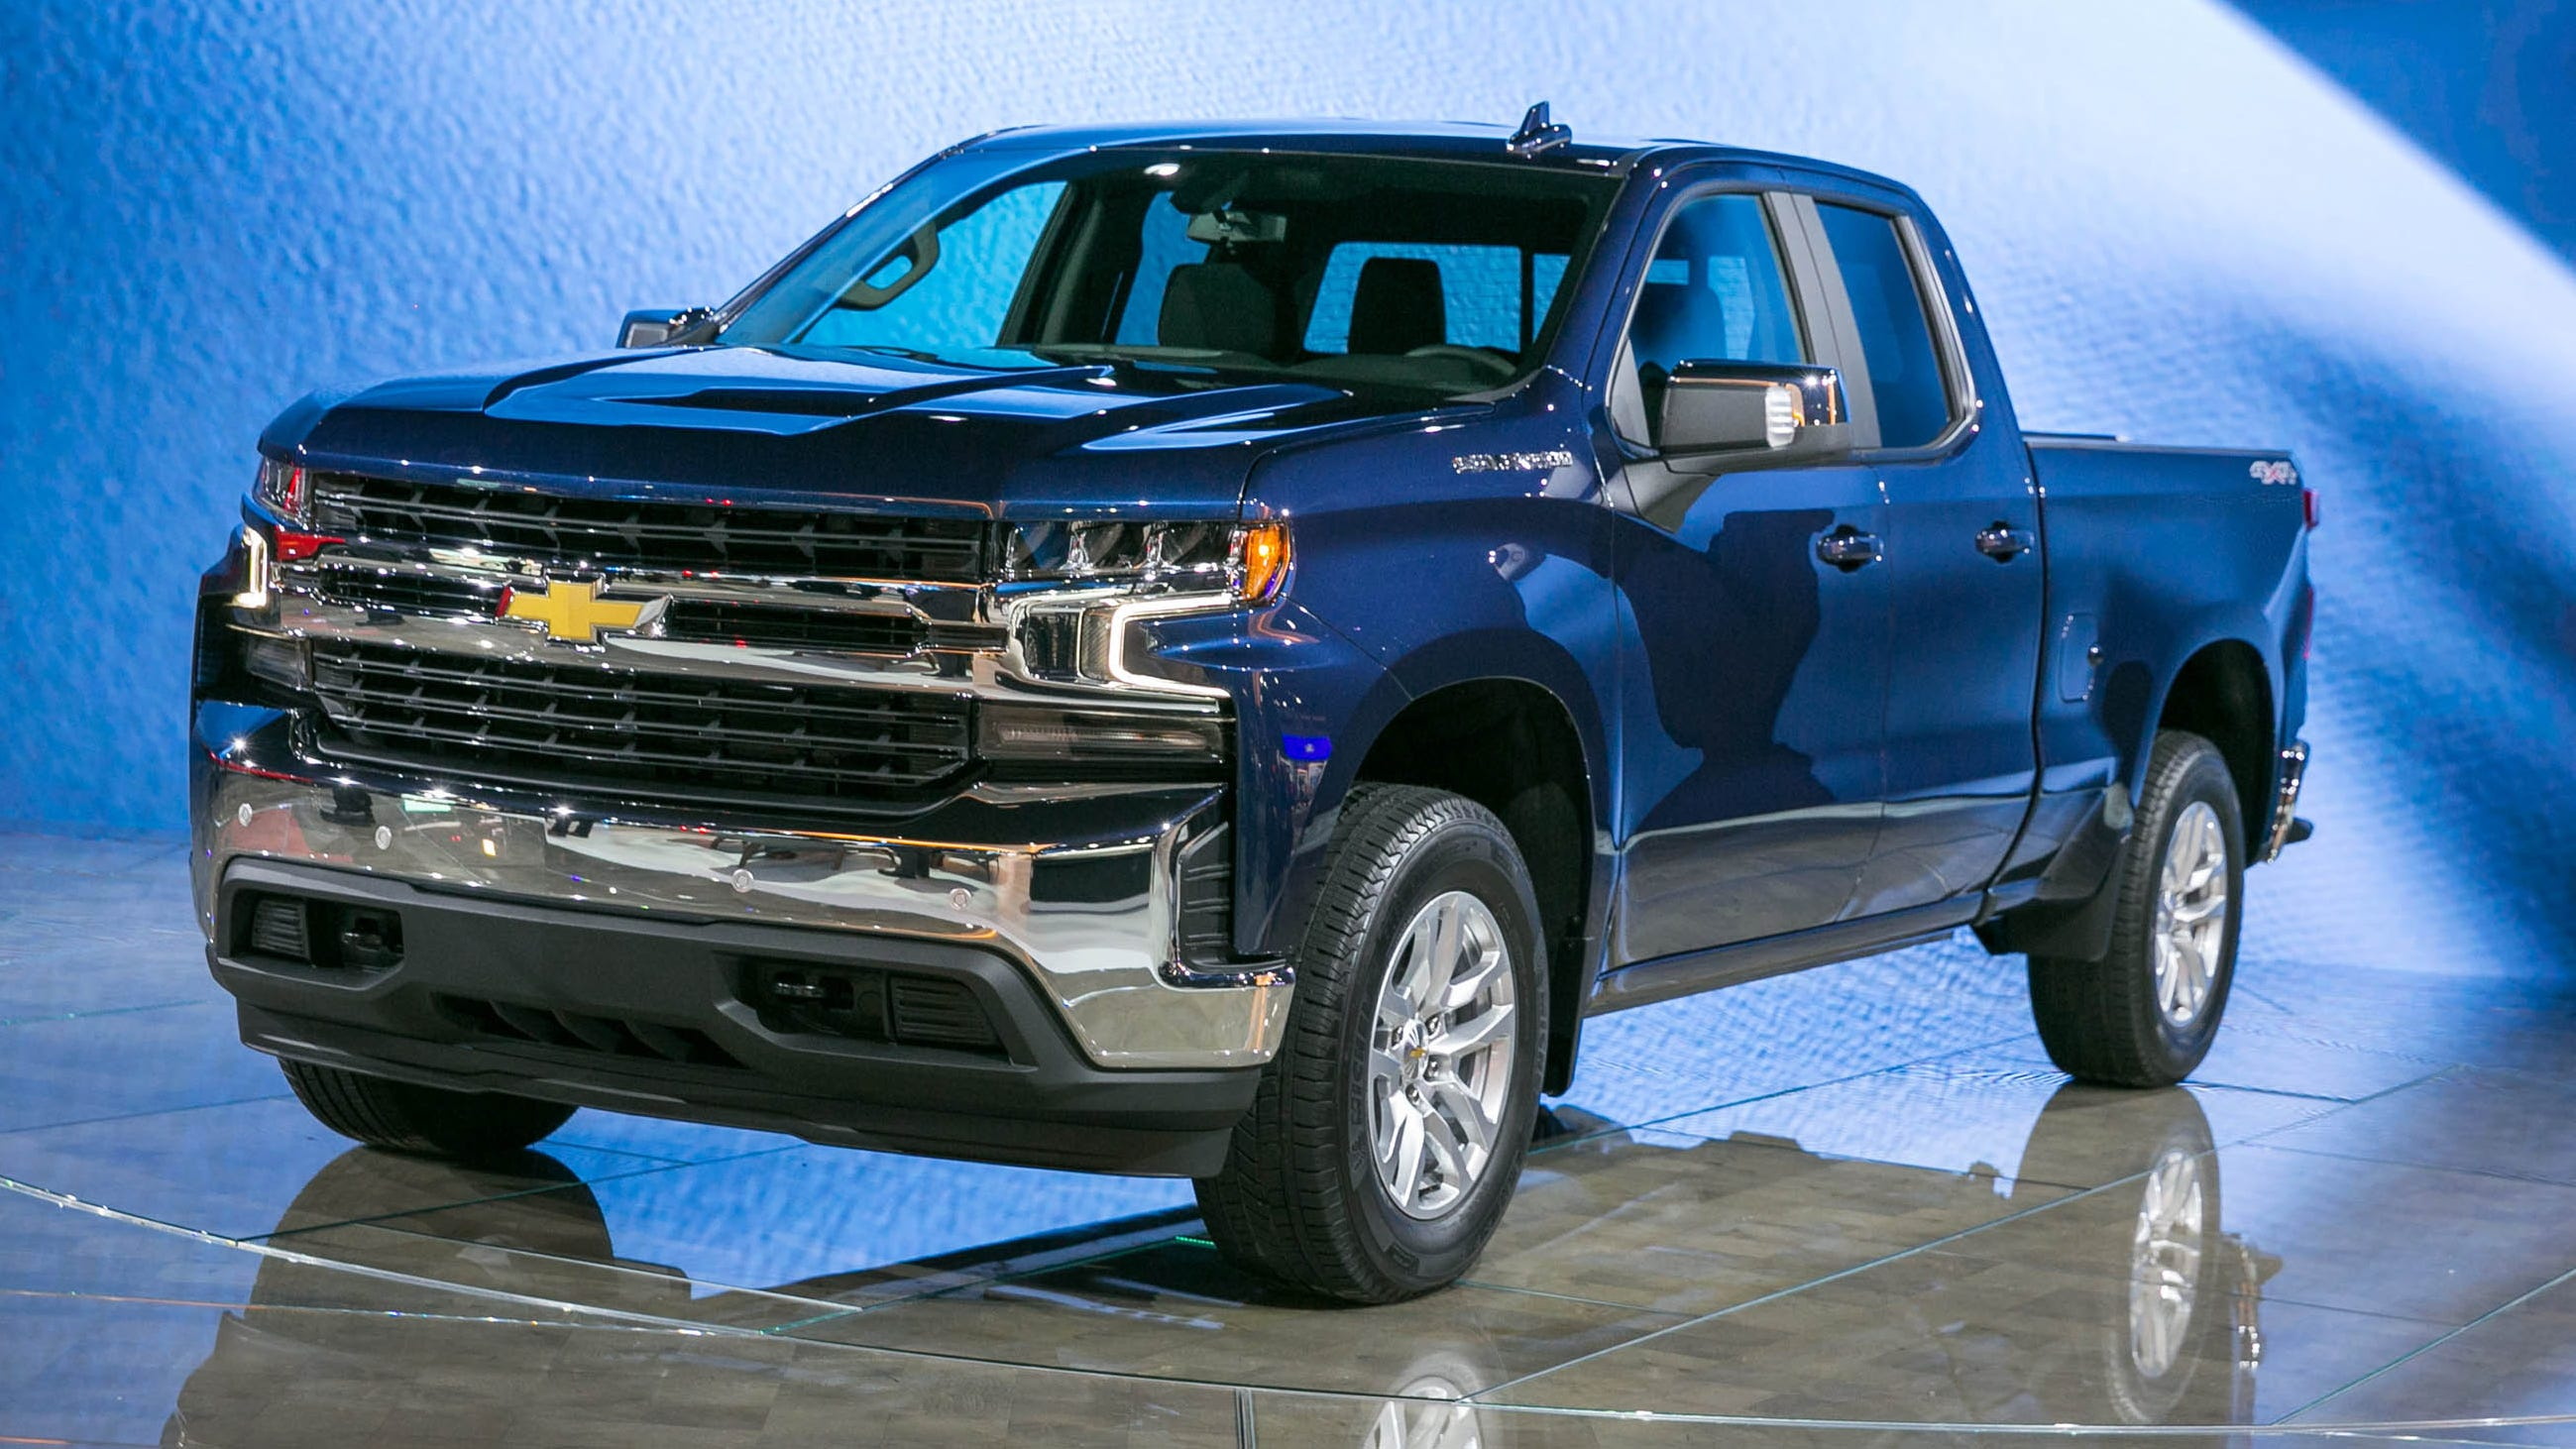 Chevrolet steps up truck war with Silverado launch, ad blitz